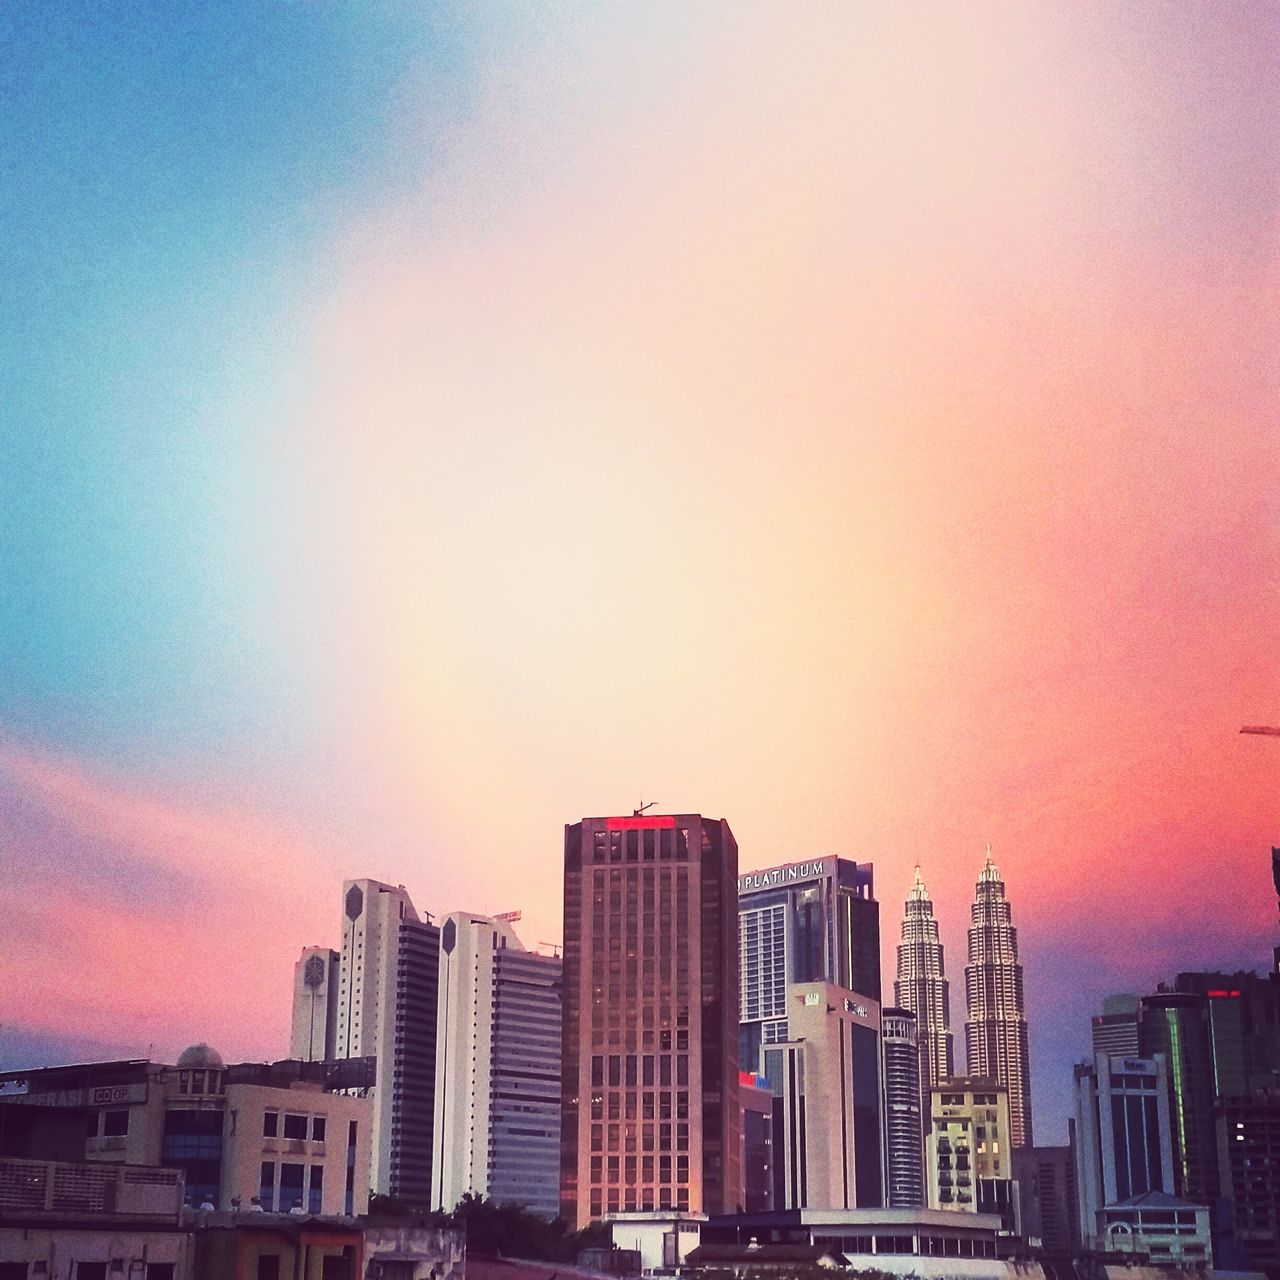 architecture, building exterior, skyscraper, built structure, modern, city, sunset, sky, cityscape, no people, outdoors, urban skyline, travel destinations, day